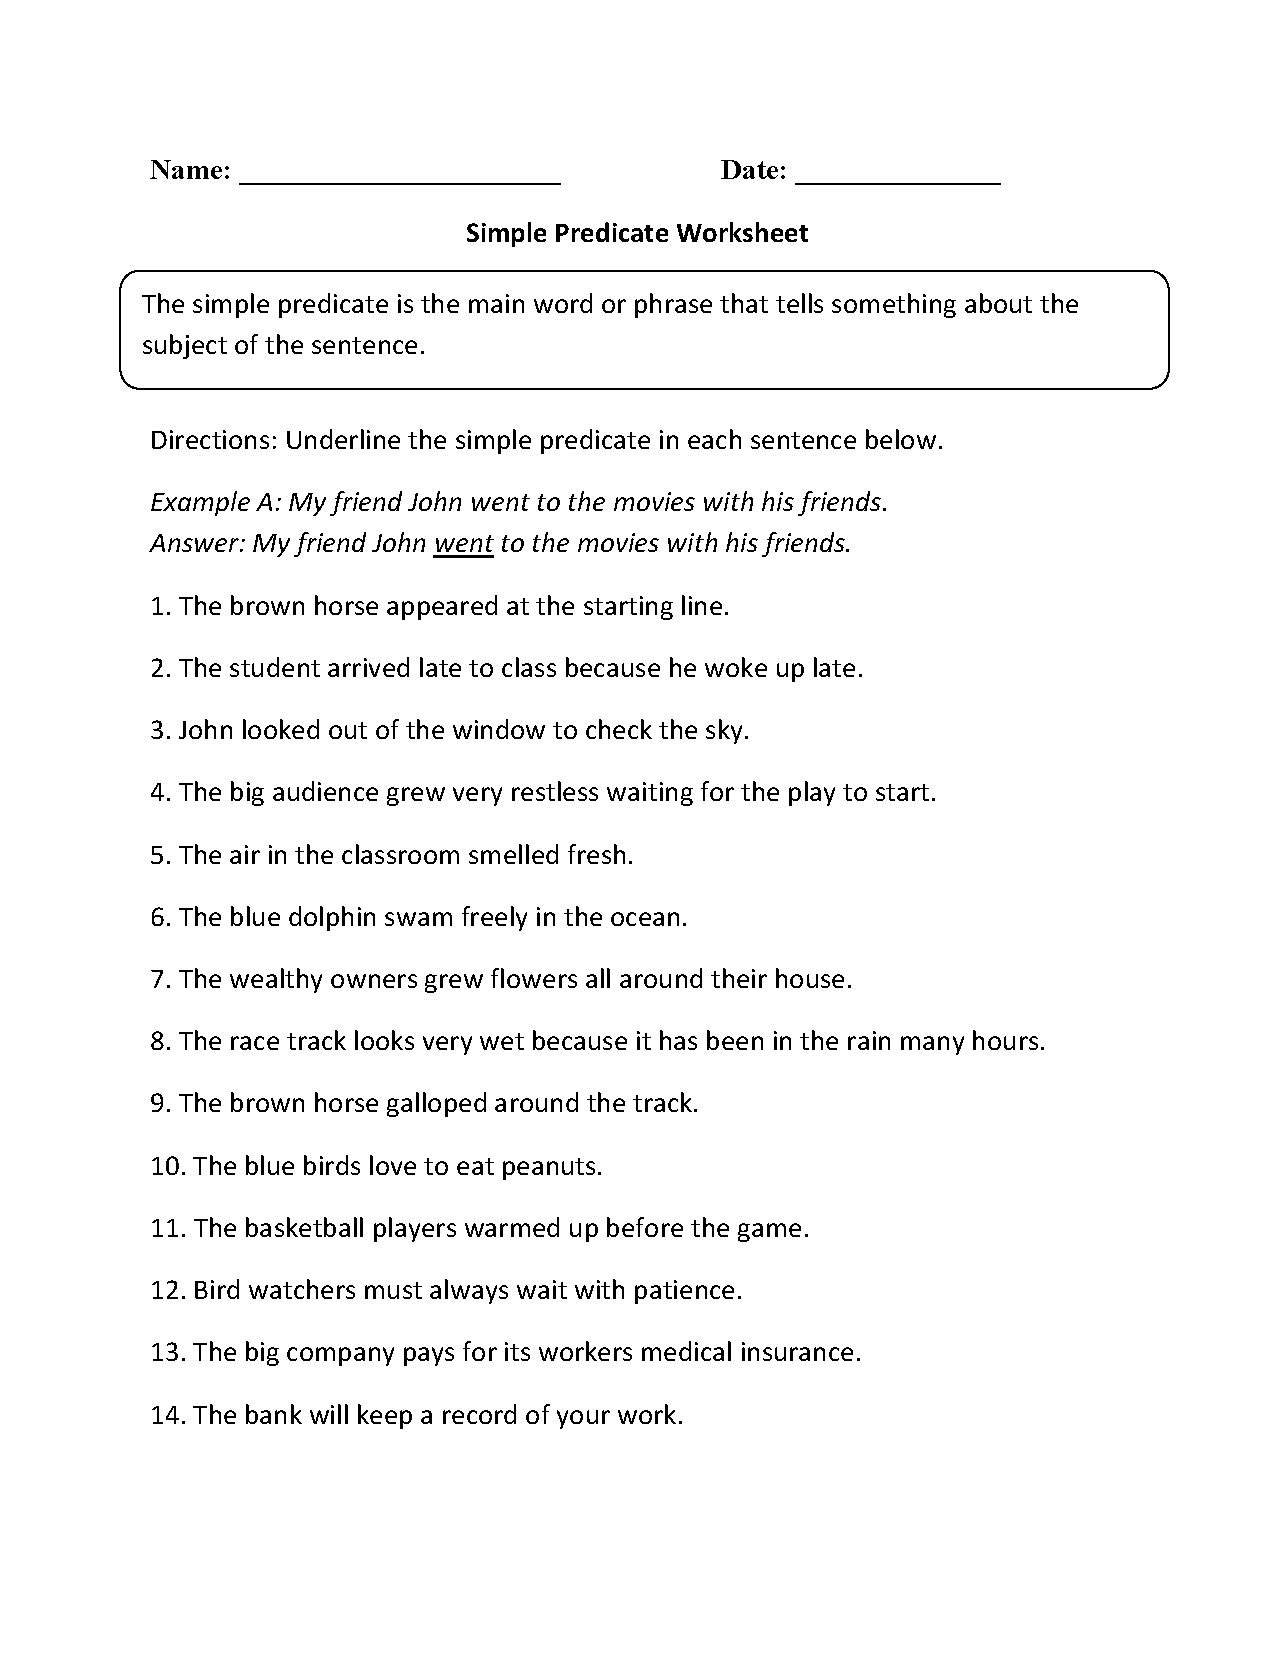 worksheet Subject Predicate Worksheets subject and predicate worksheets simple worksheet worksheet